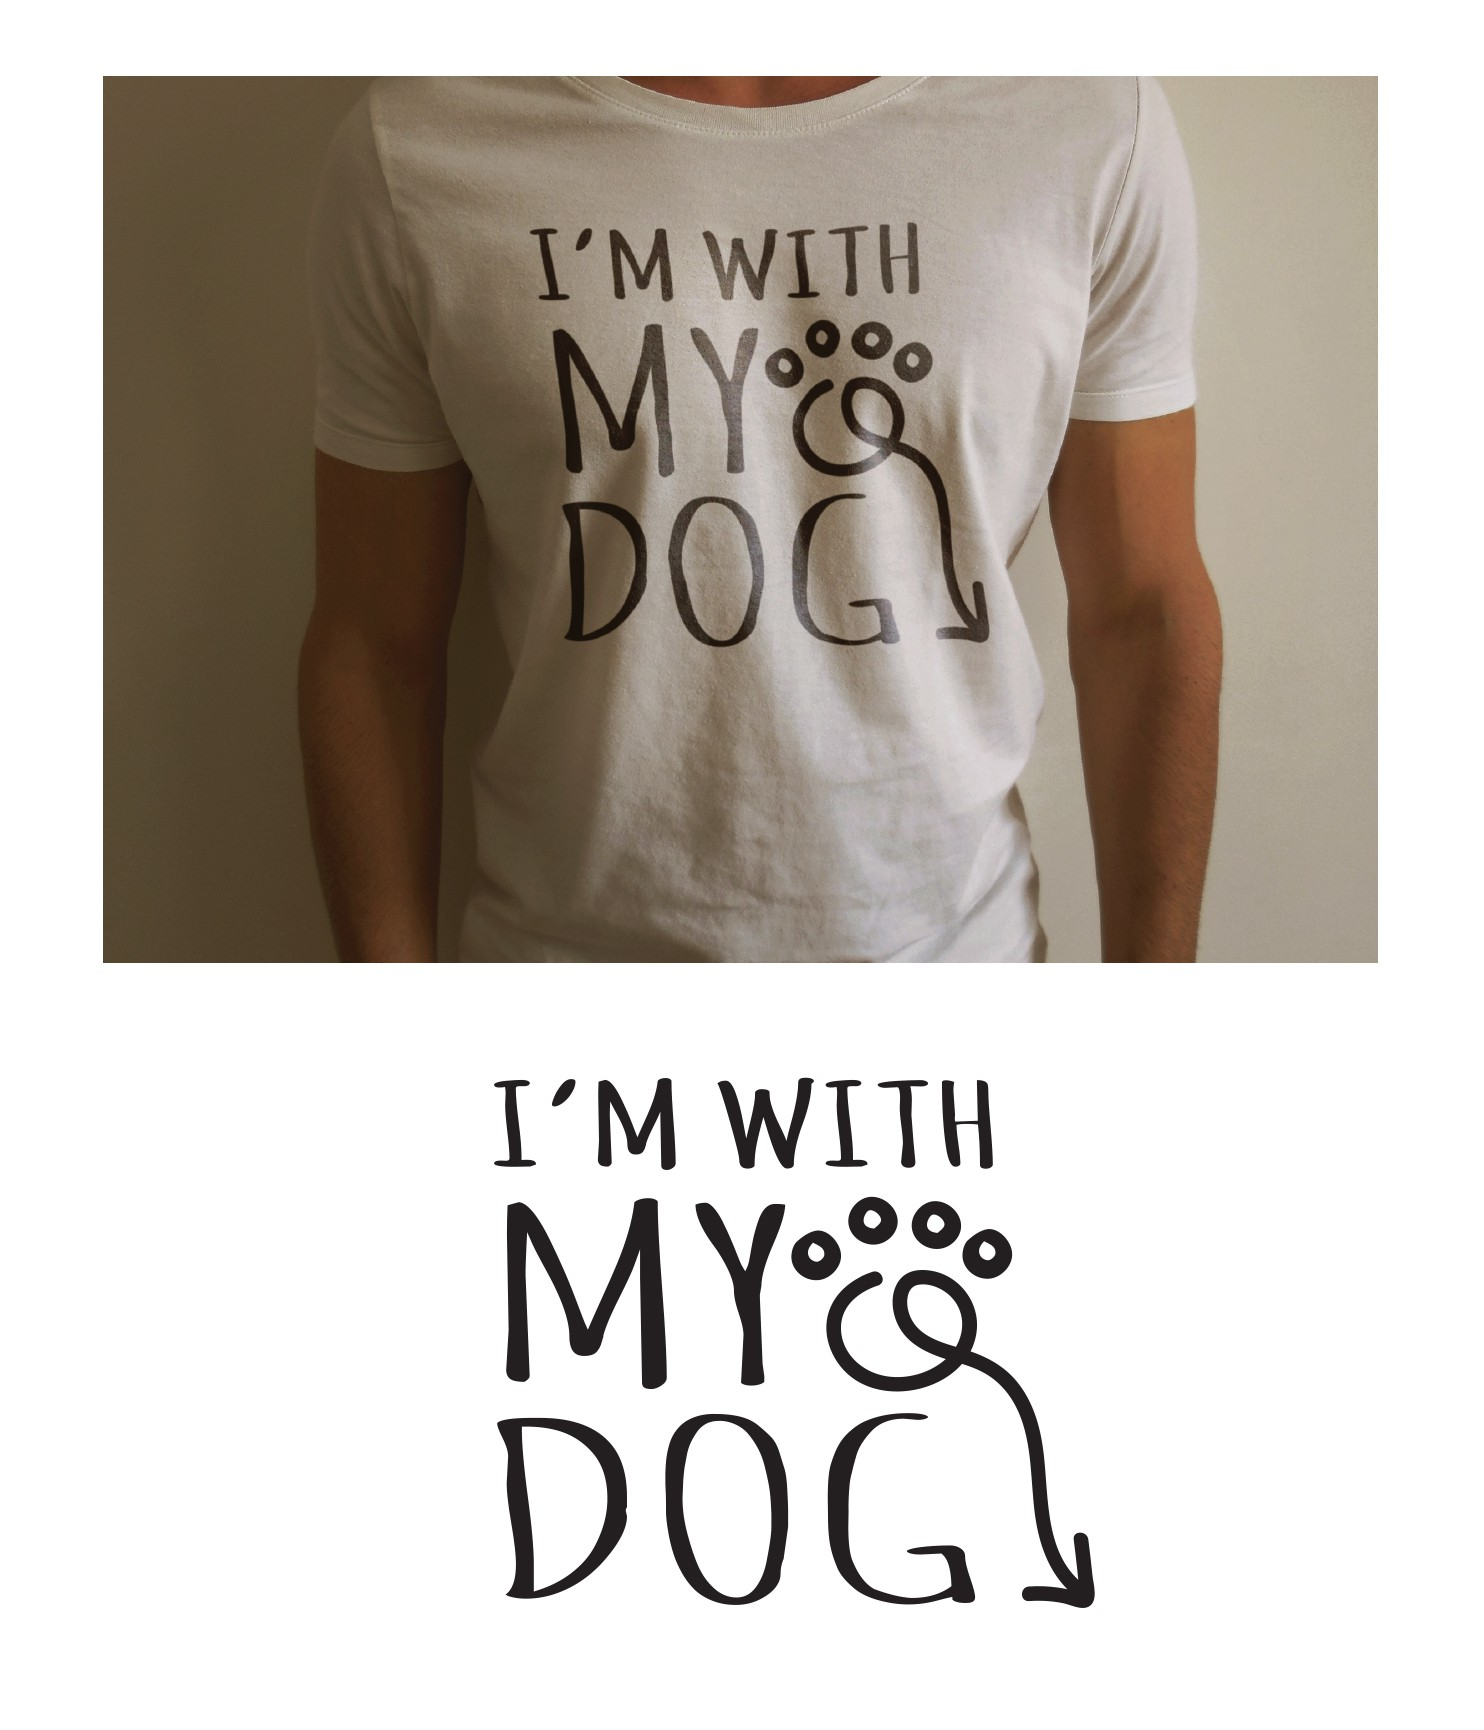 For dog lovers everywhere!